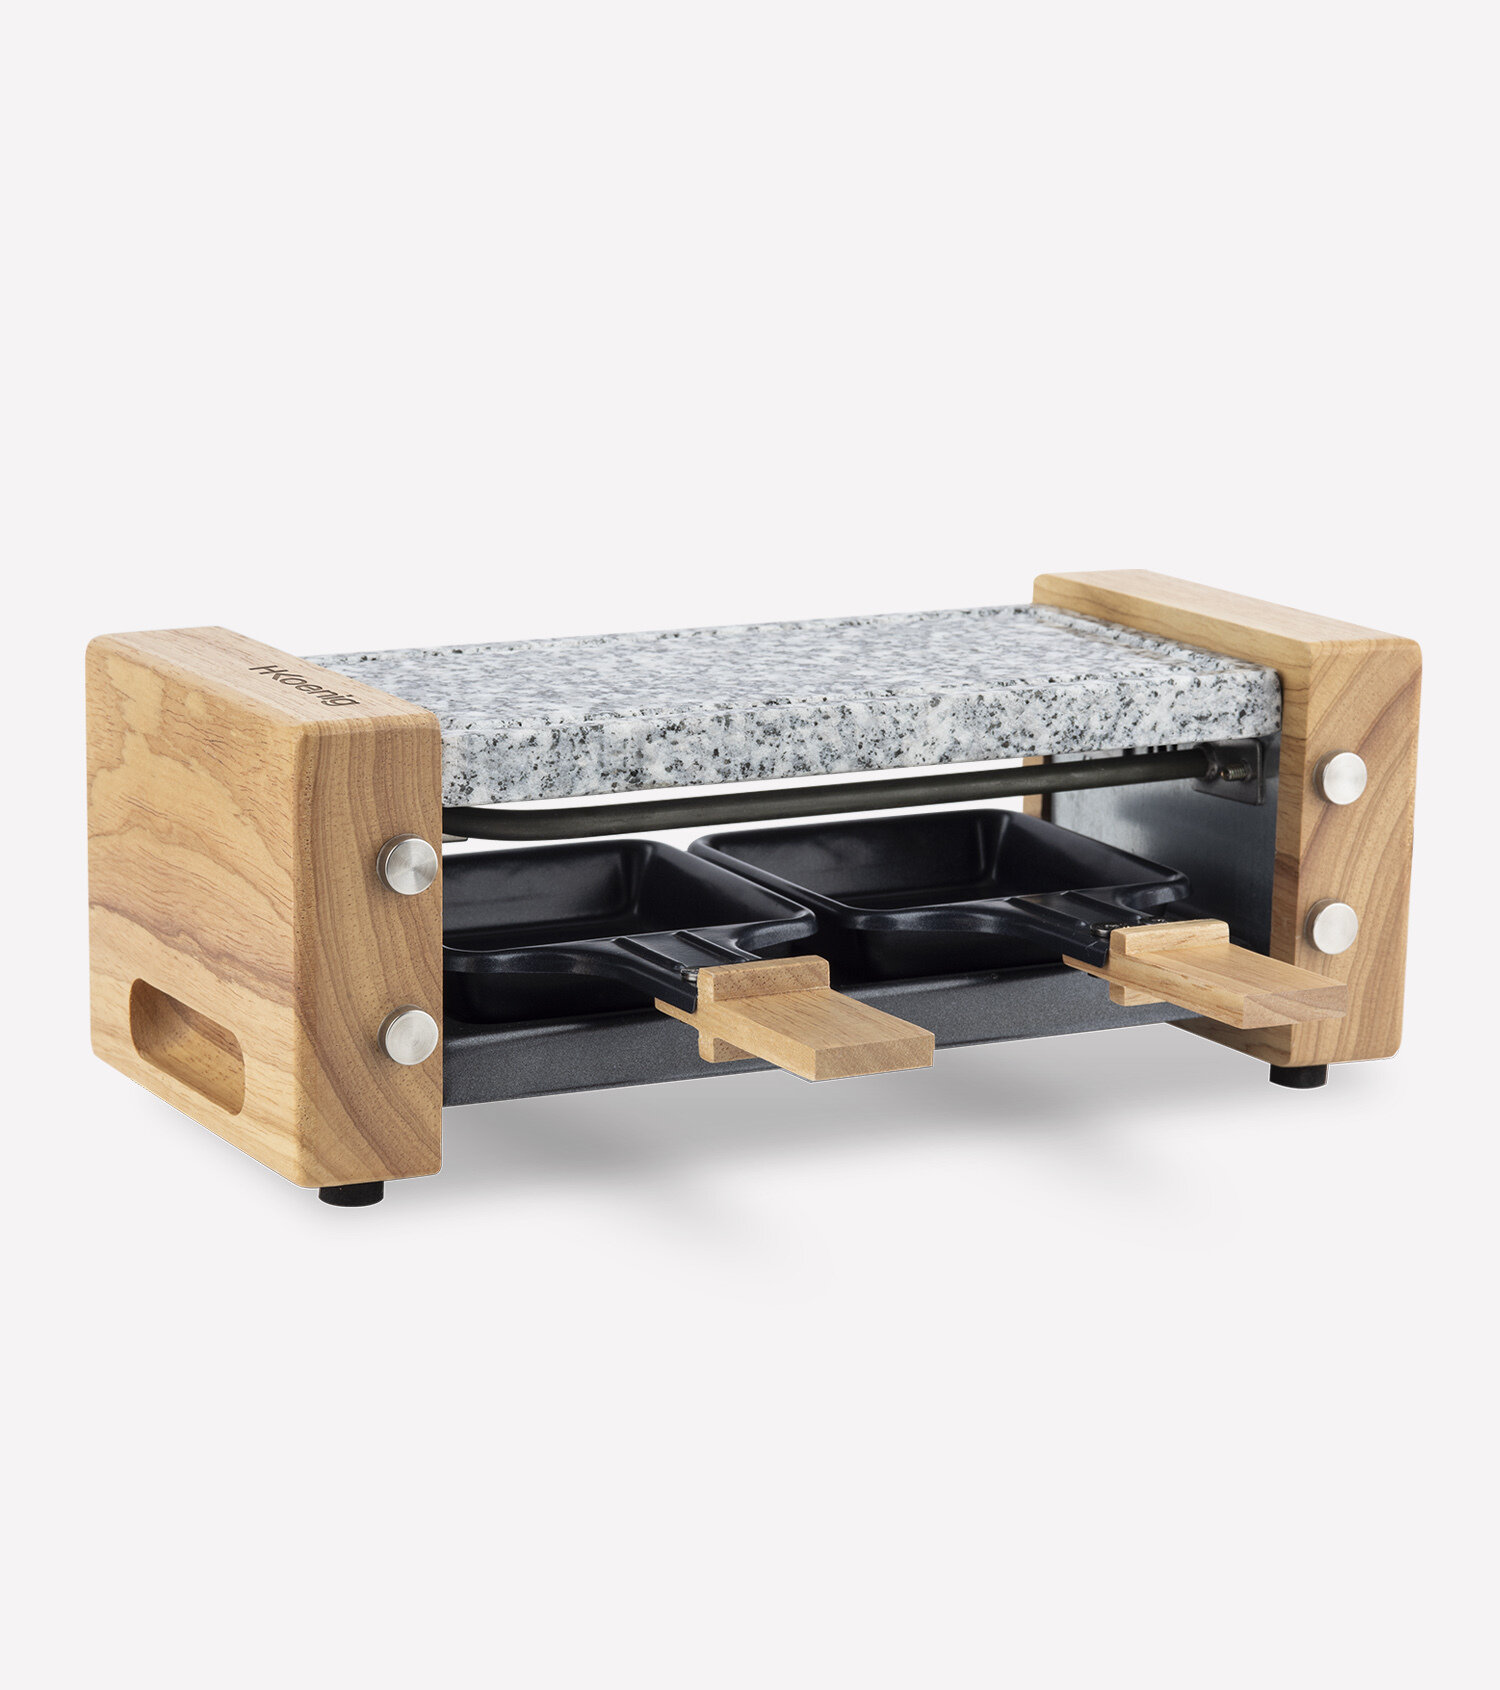 raclette and cooking stone 2 persons wooden design